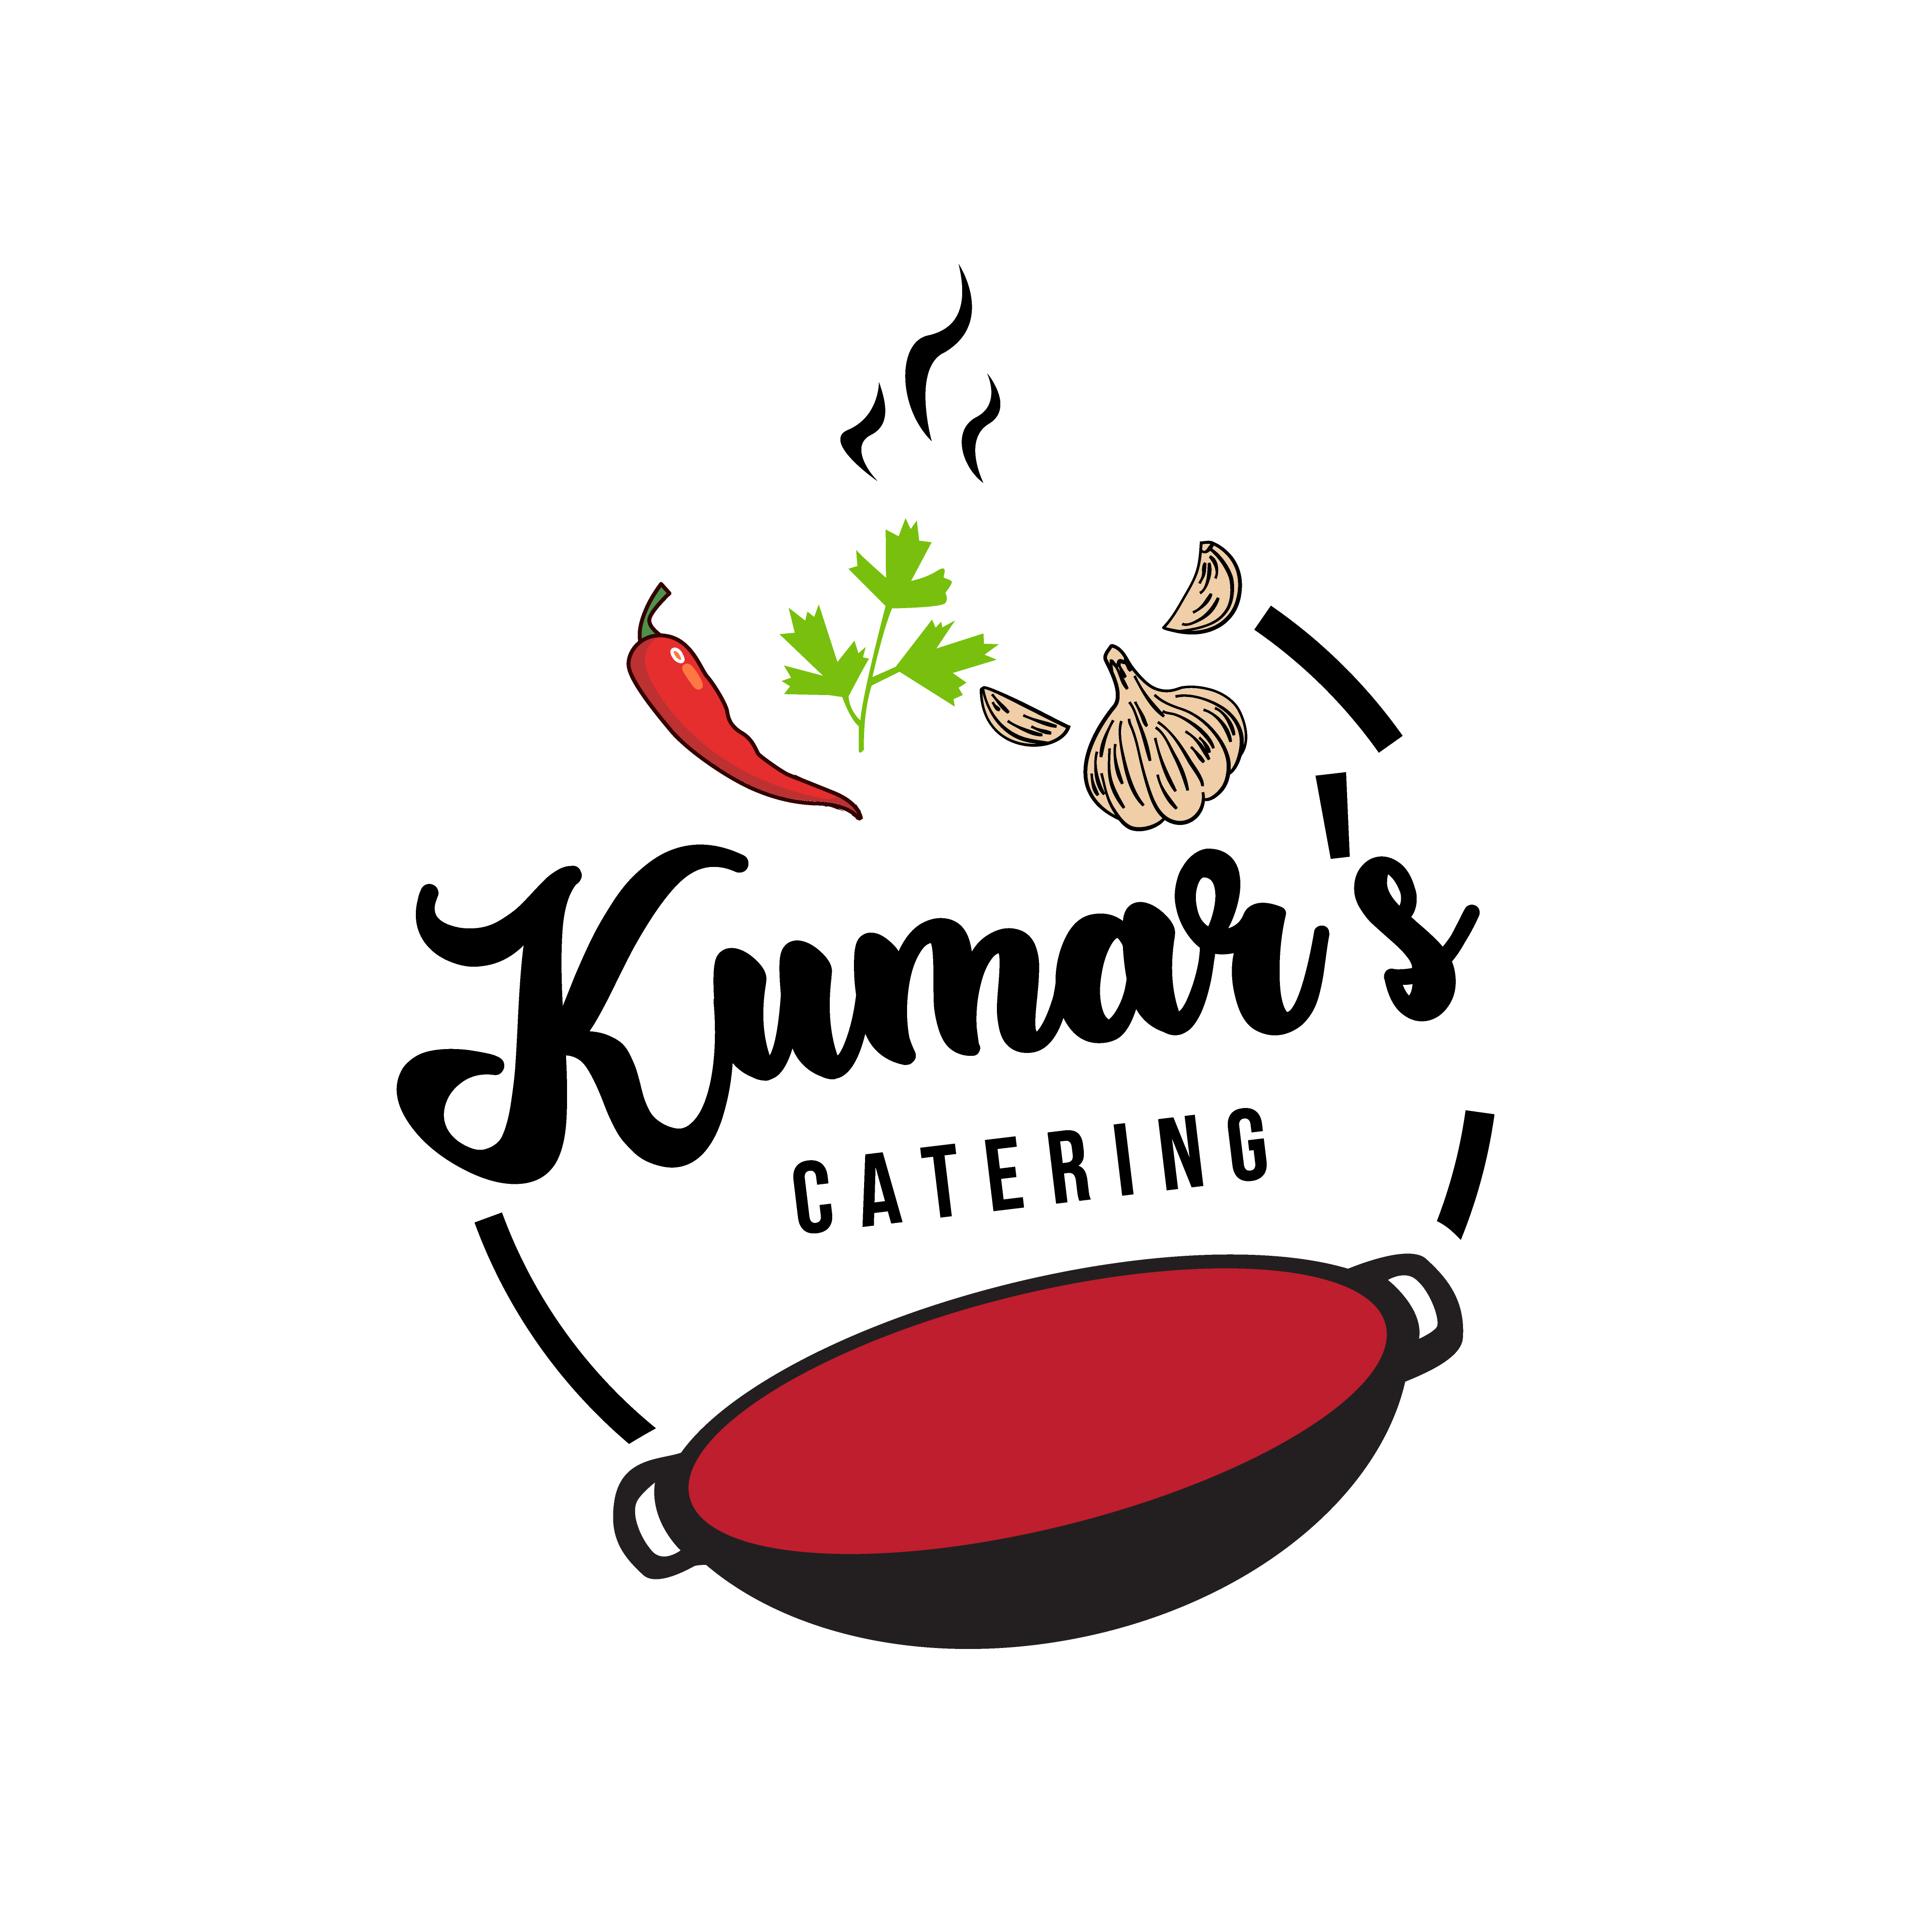 The Kumar's Catering